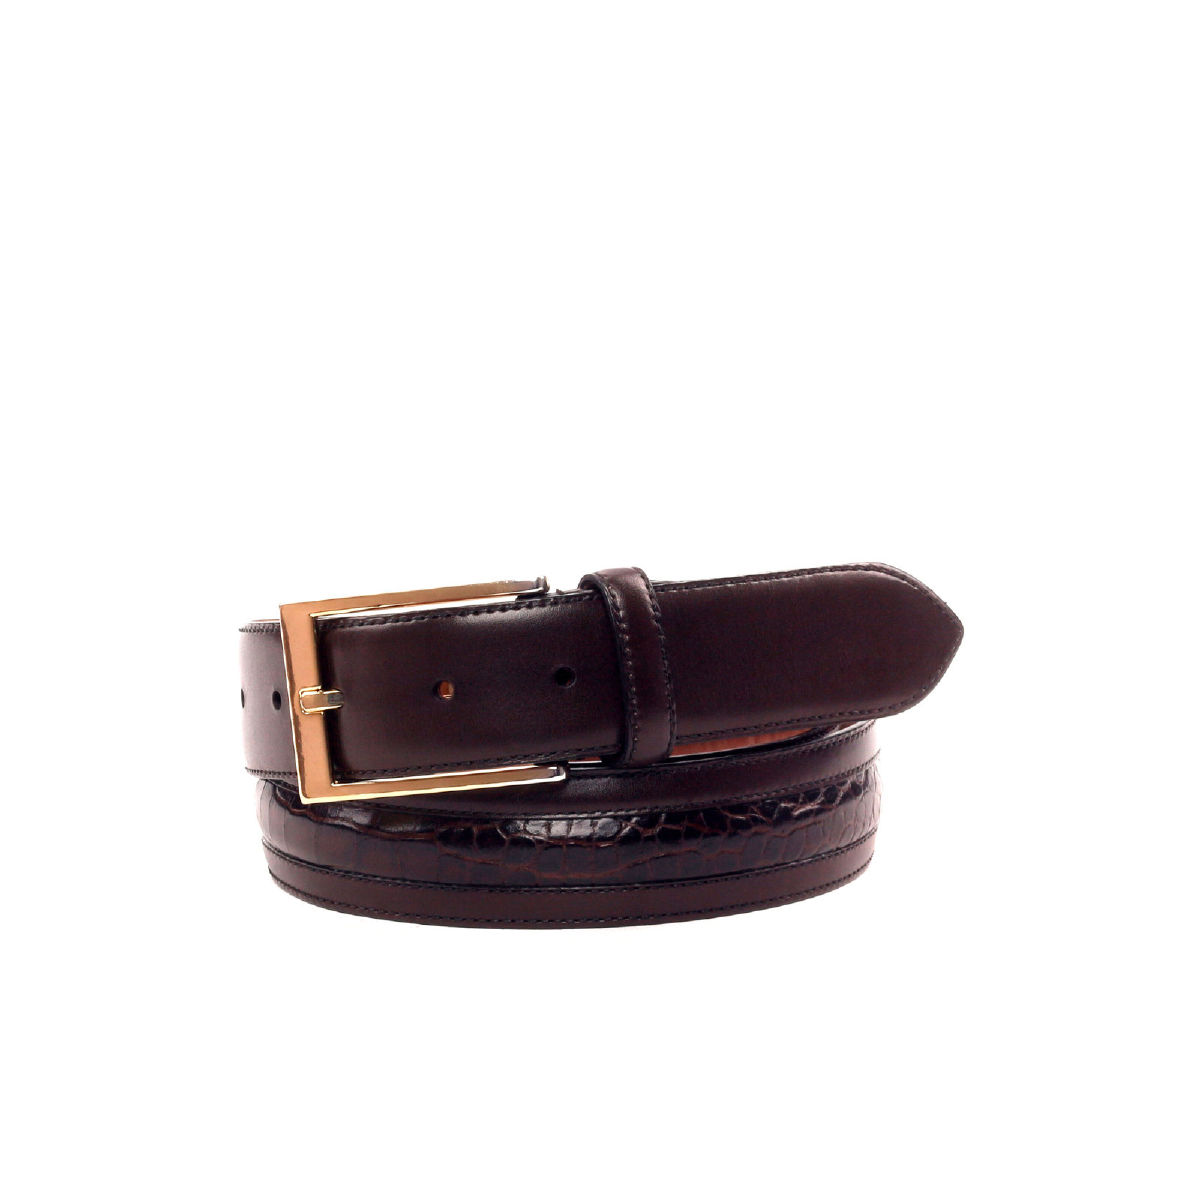 Side view of model Dove Valley, dark brown box calf, dark brown painted croco, luggare nubuck, gold hardware Golf BespokeShoes